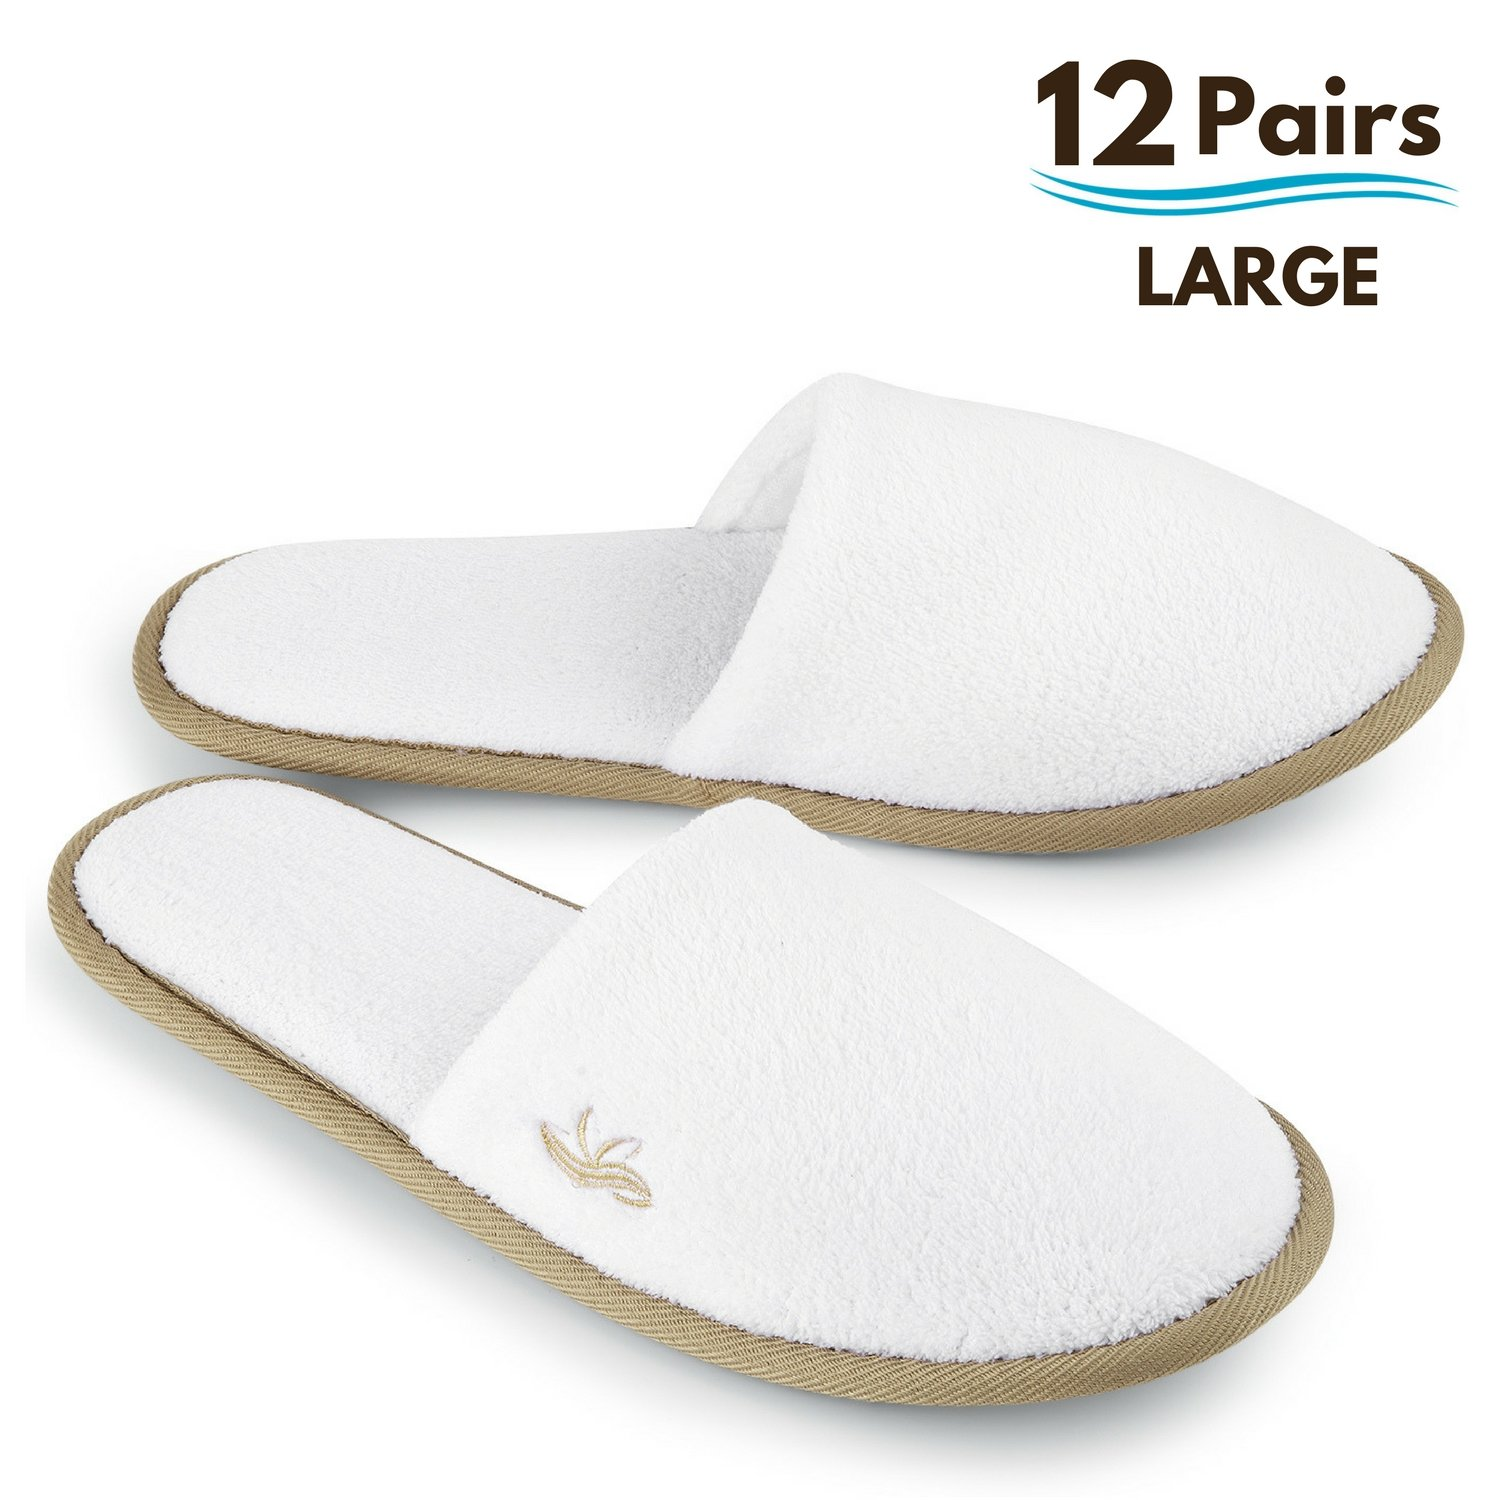 BERGMAN KELLY Spa Slippers, Closed Toe (White, Cocoa Trim, 12 Pairs Size Large) Disposable Indoor Hotel Slippers for Men and Women, Fluffy Coral Fleece, Deluxe Padded Sole for Extra Comfort